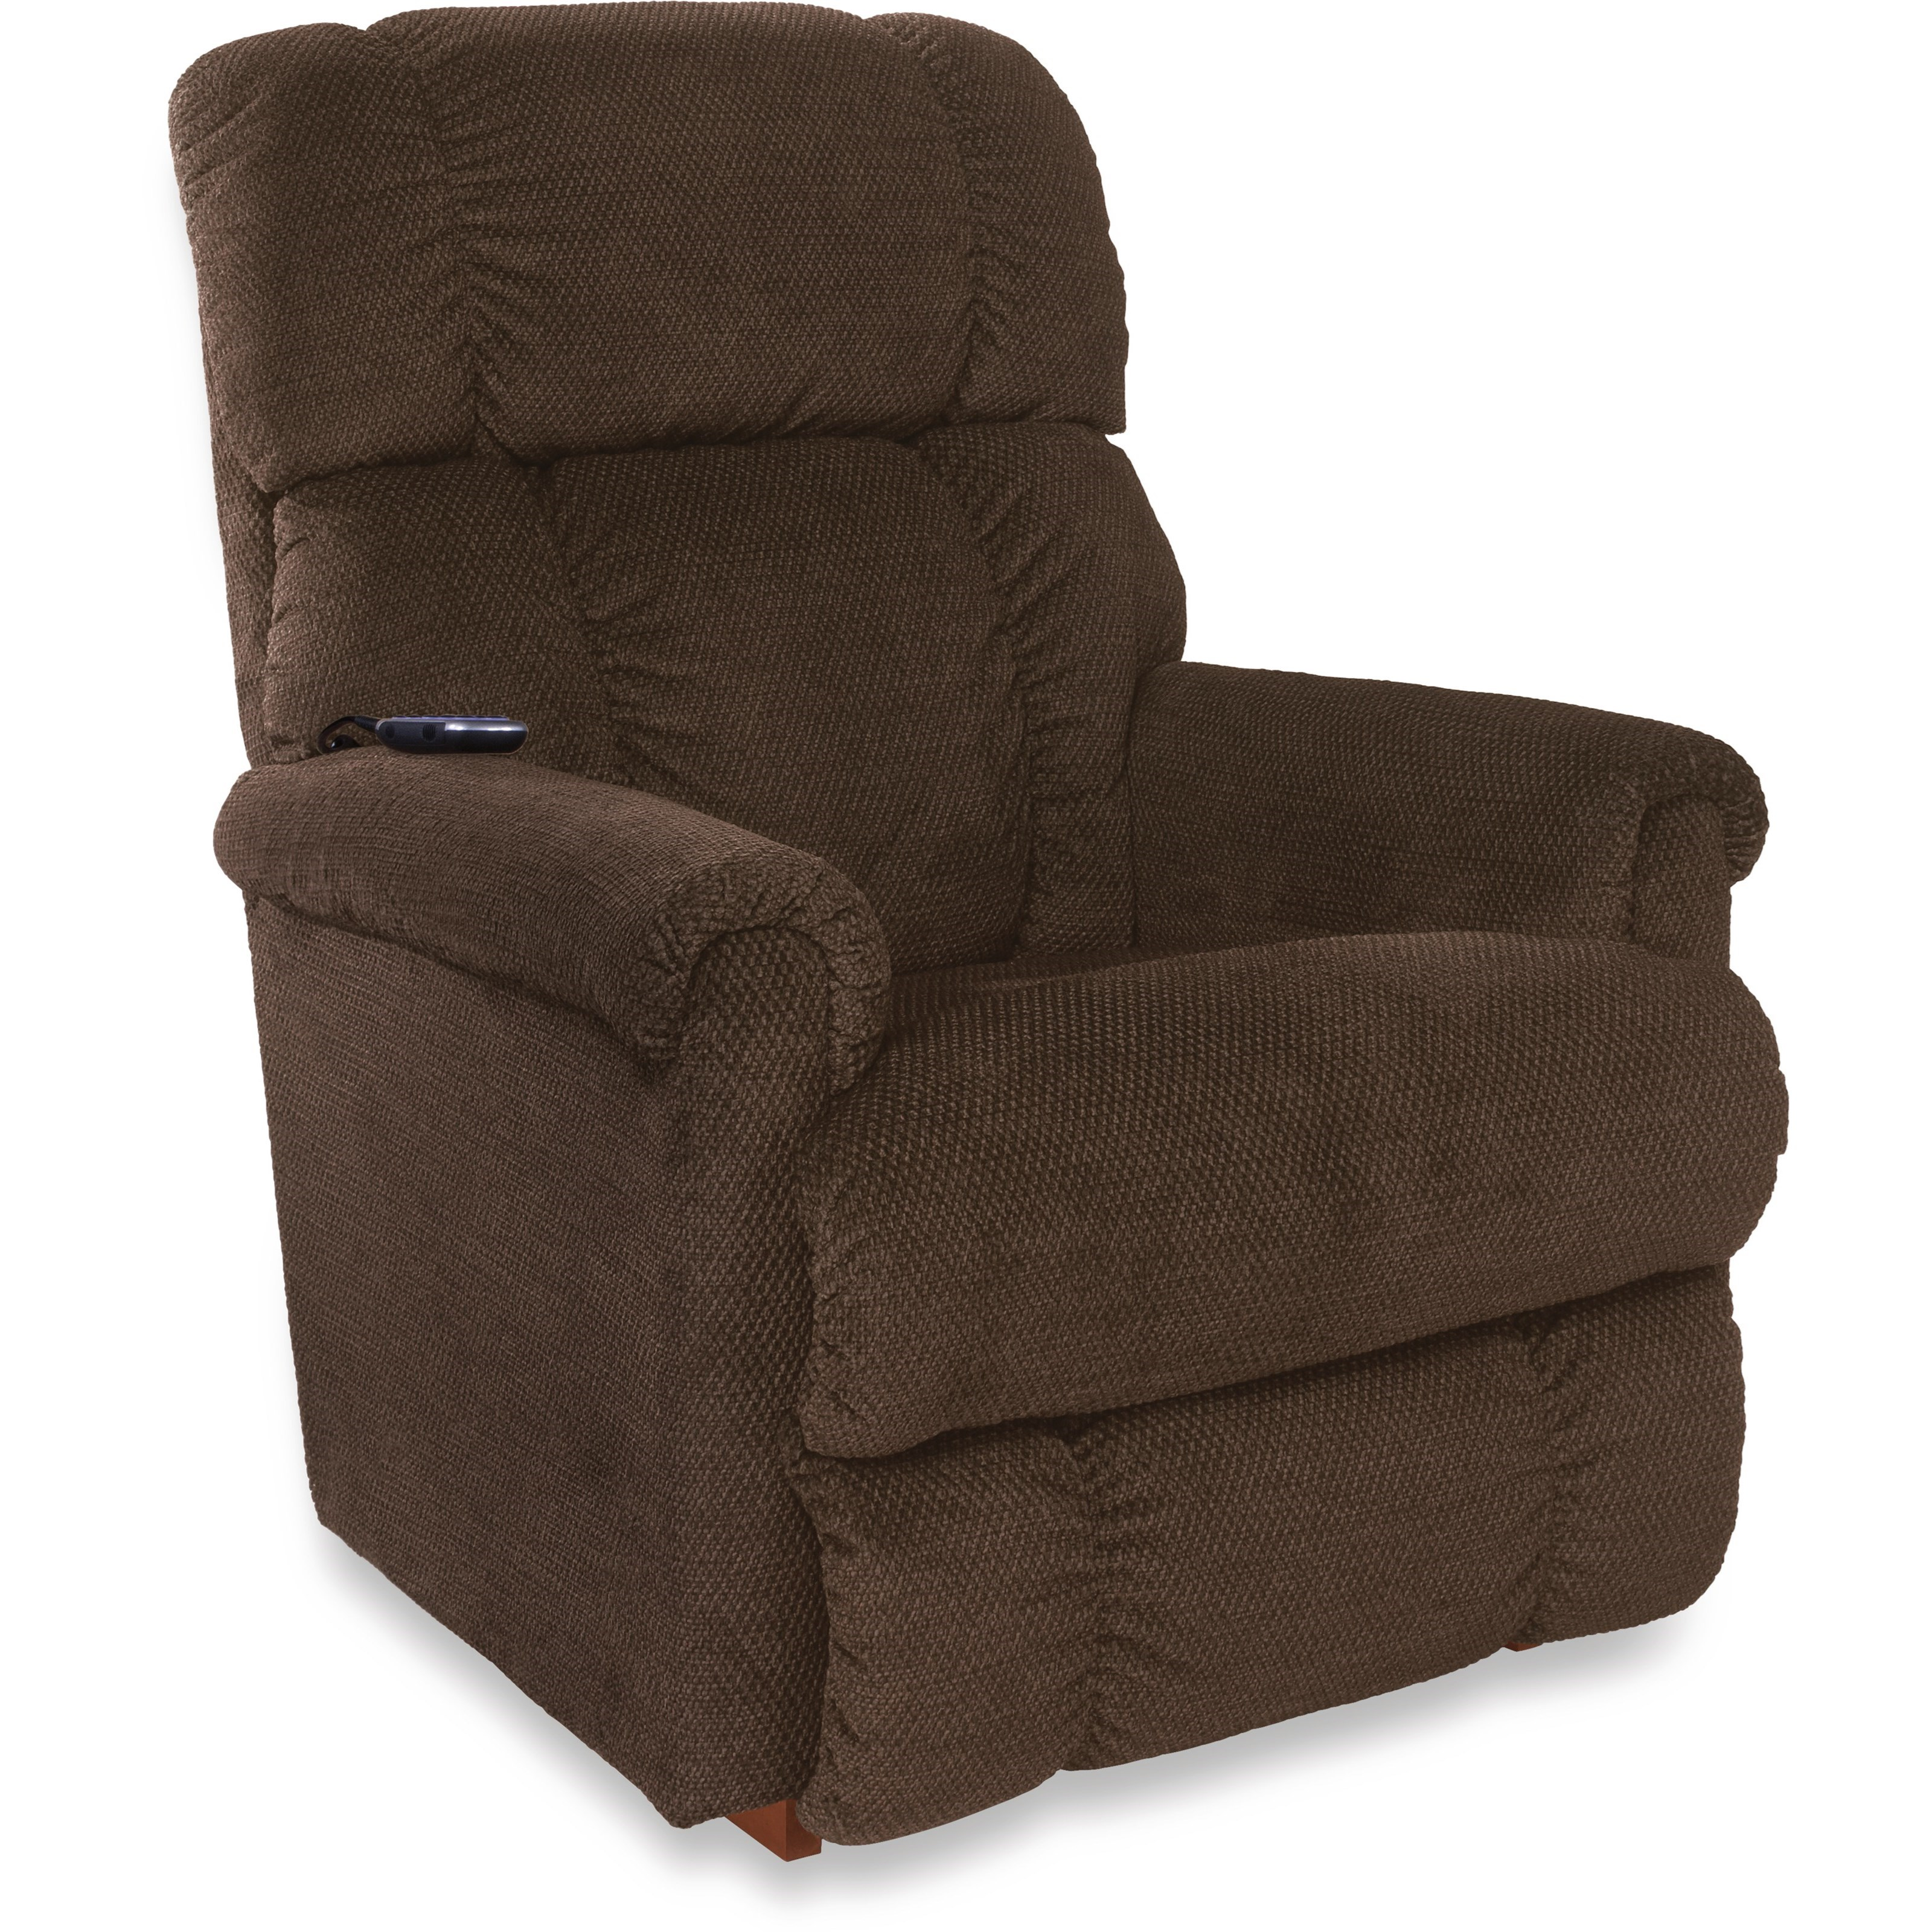 Platinum Luxury Lift? Power Recline XR Recliner With 6 Motor Massage And